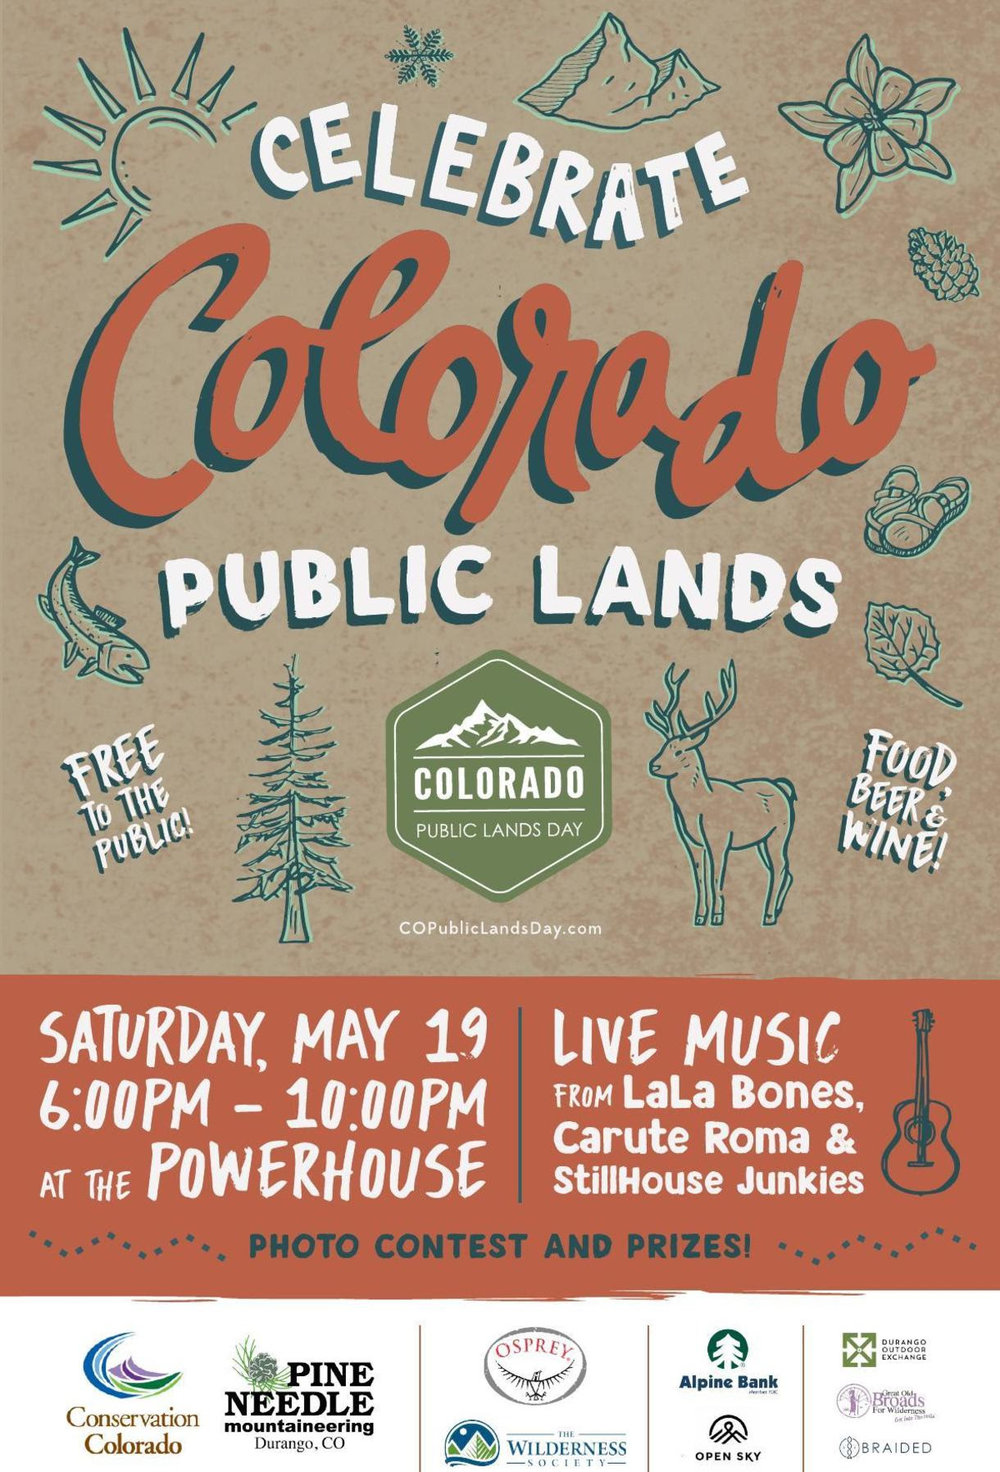 Colorado-Public-Lands-Day-May-19-2018.jpg